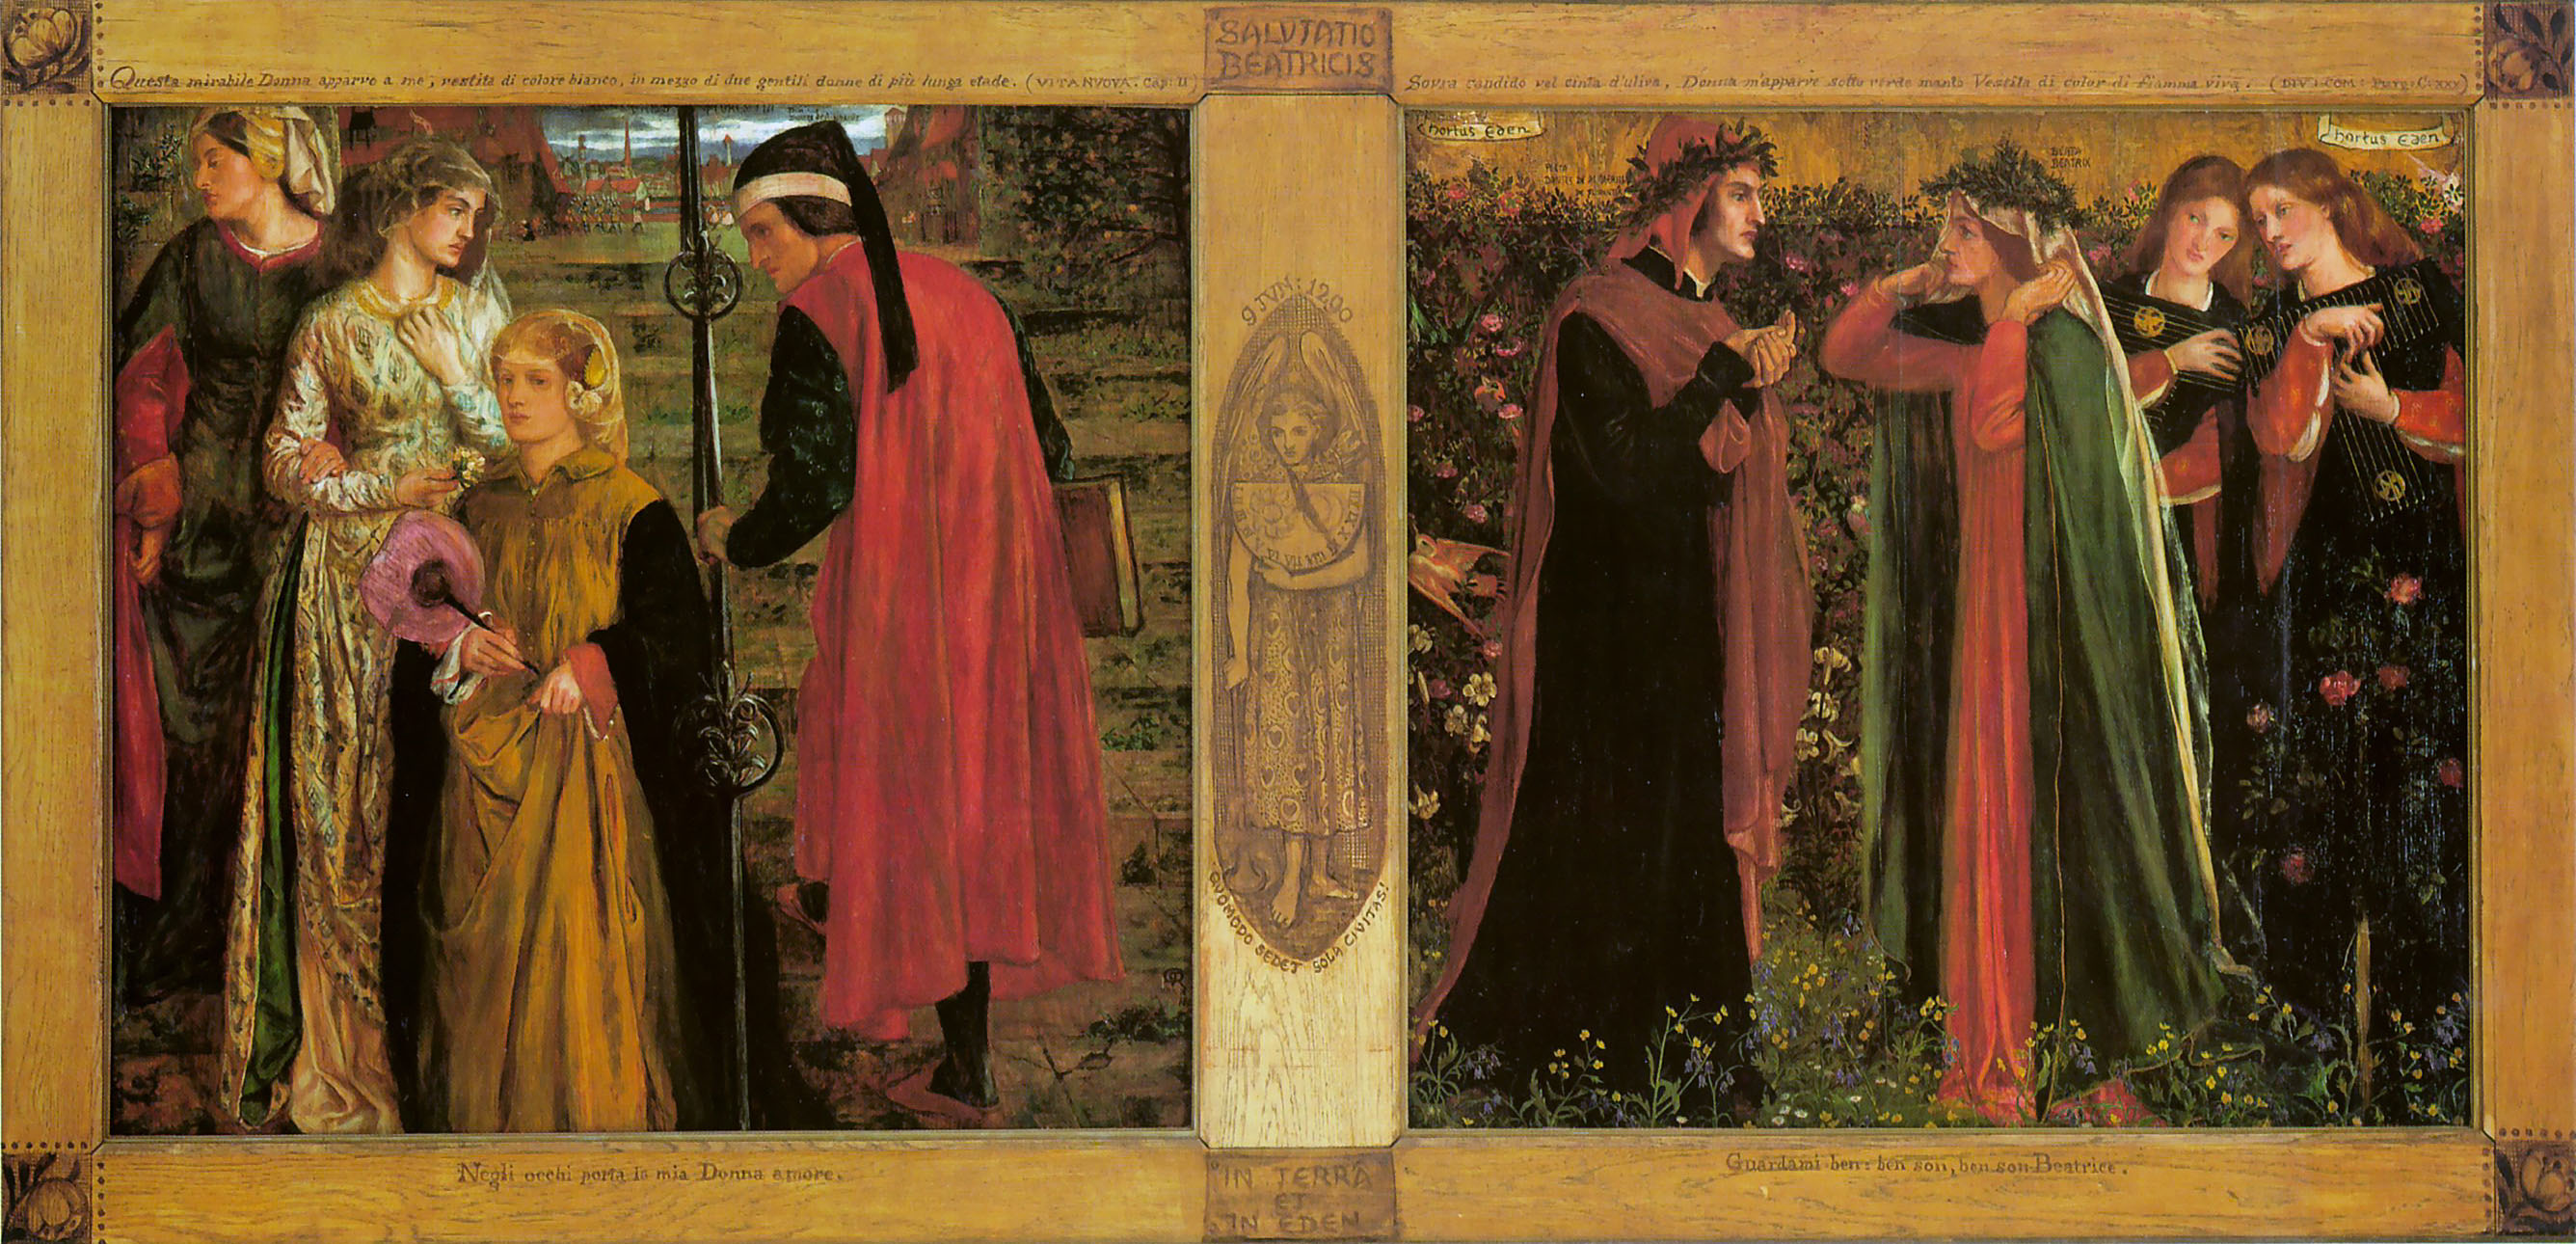 story of dante and beatrice